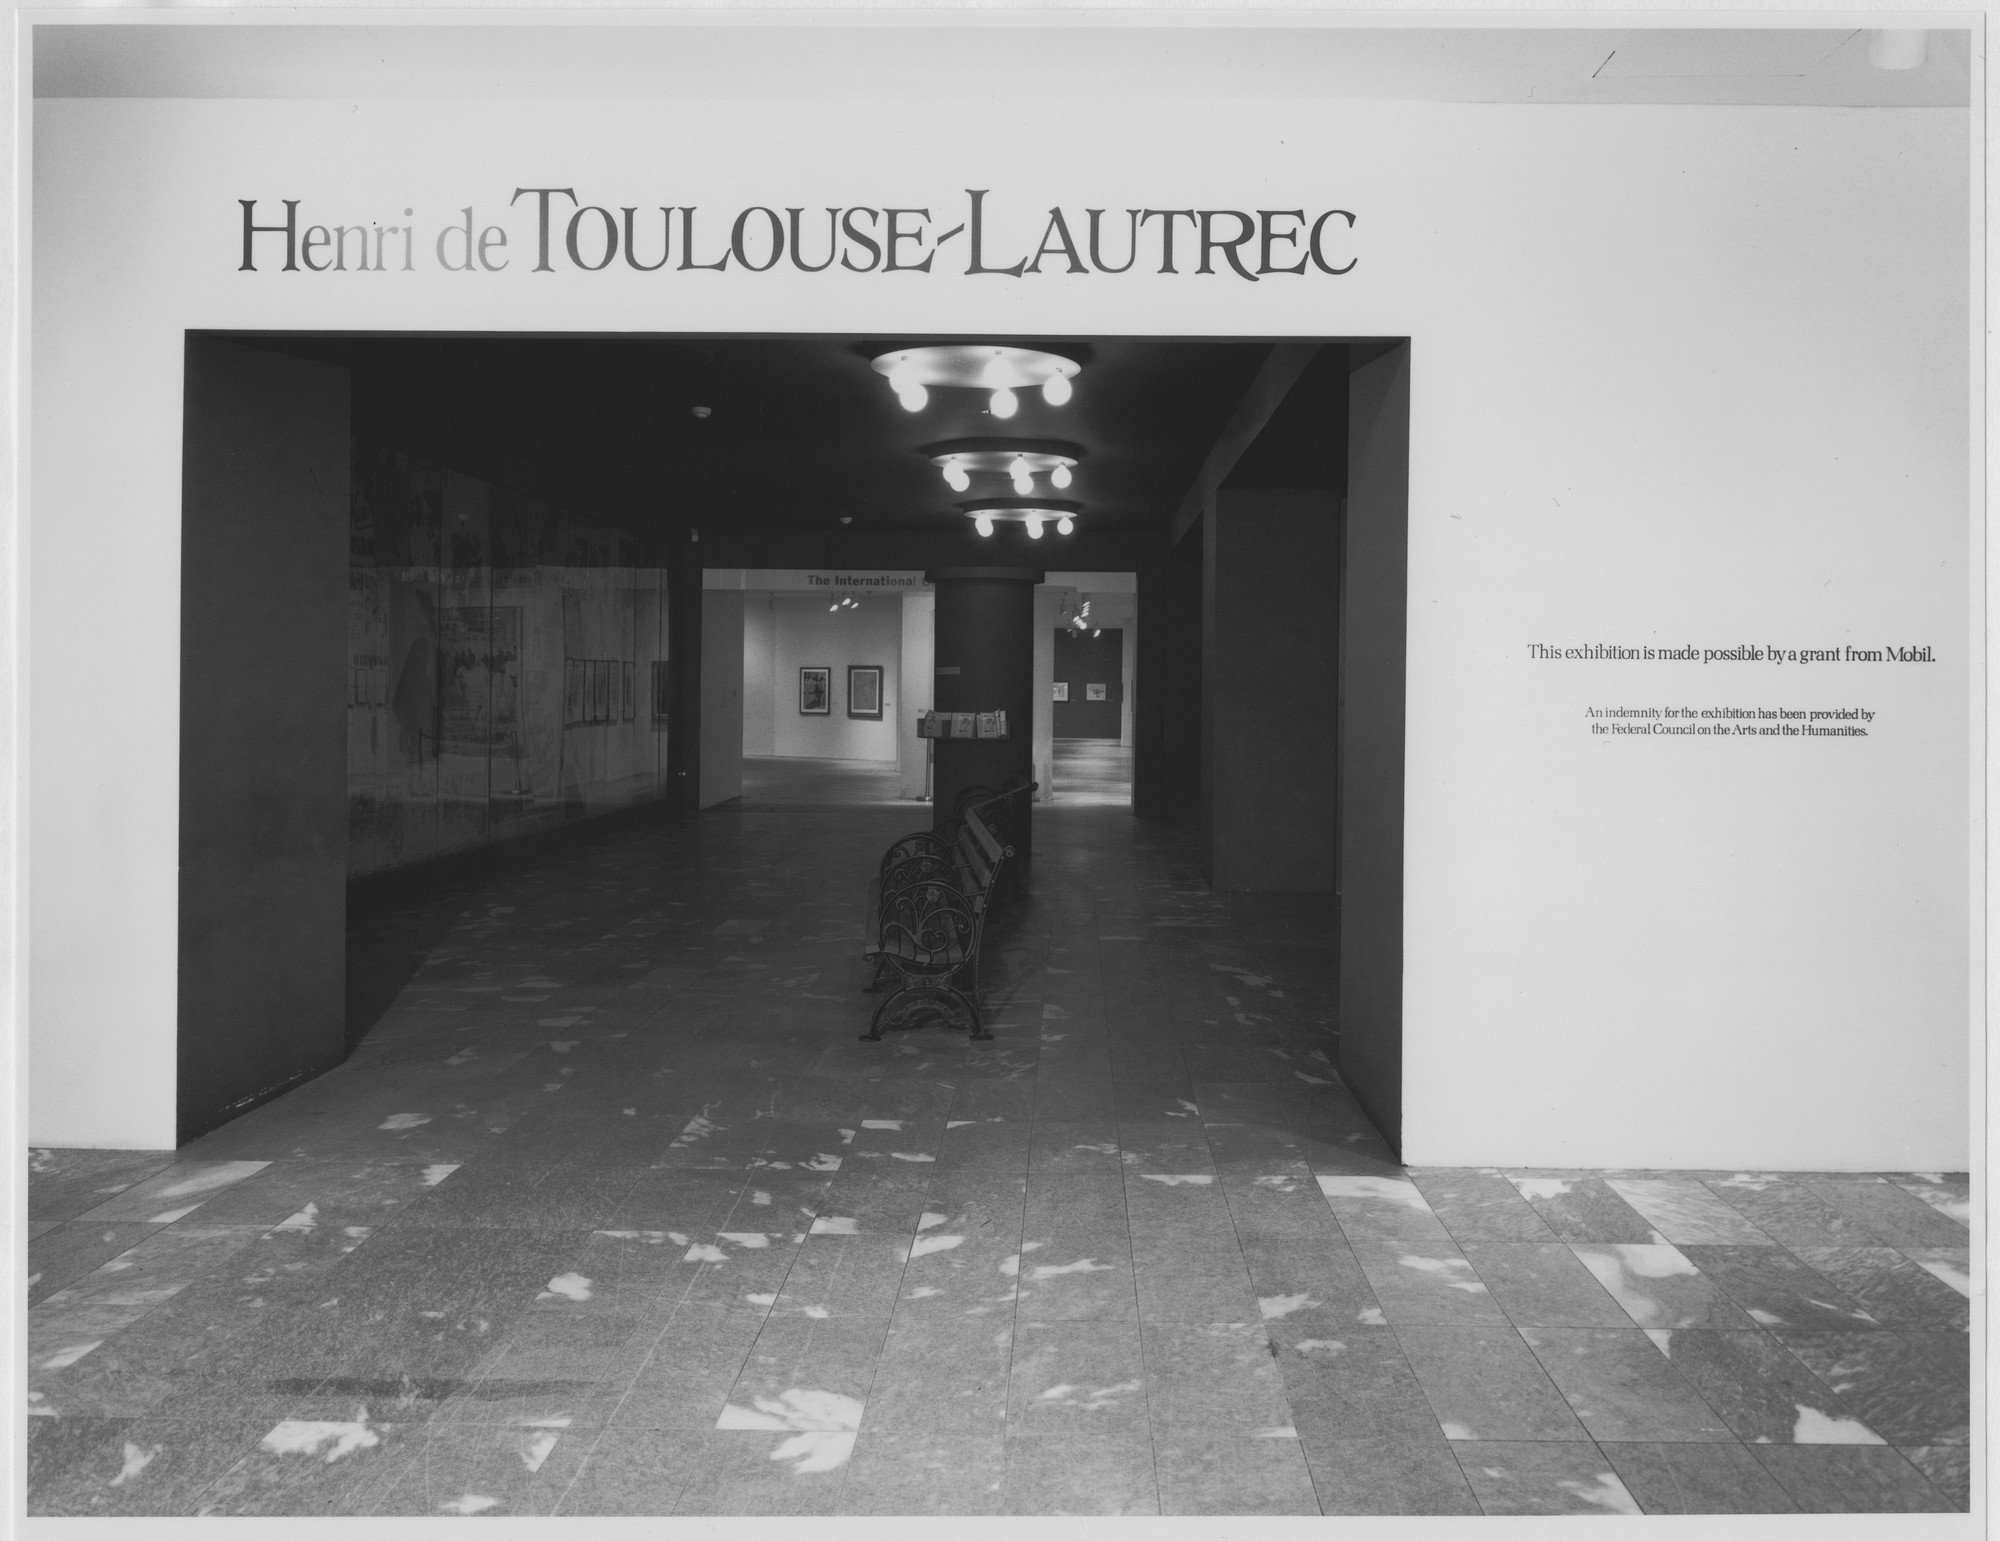 "Installation view of the exhibition, ""Henri de Toulouse-Lautrec"" October 30, 1985–January 26, 1986. Photographic Archive. The Museum of Modern Art Archives, New York. IN1408.1. Photograph by Mali Olatunji."